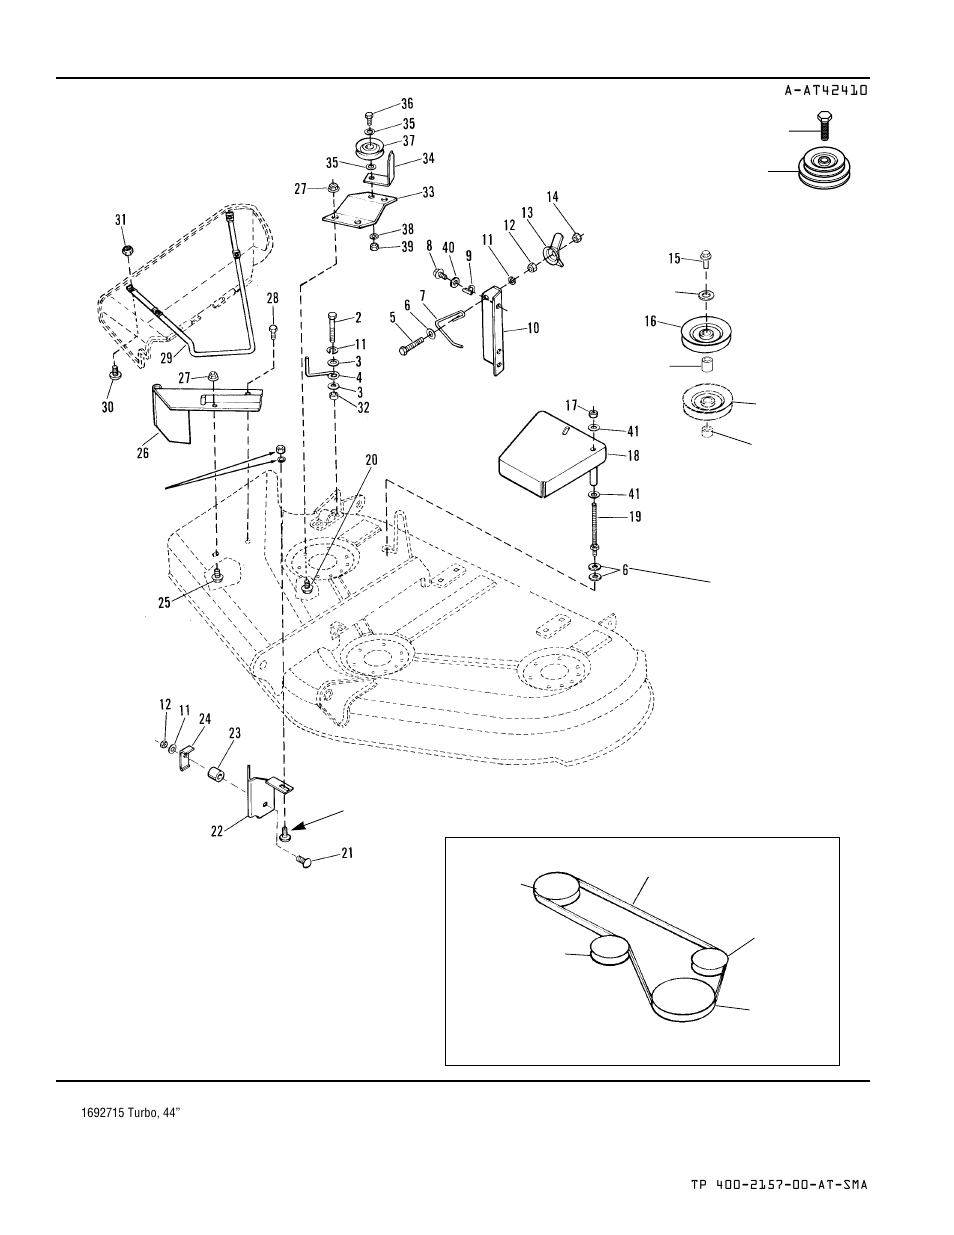 Belt routing | Simplicity TURBO COLLECTORS 1693227 User